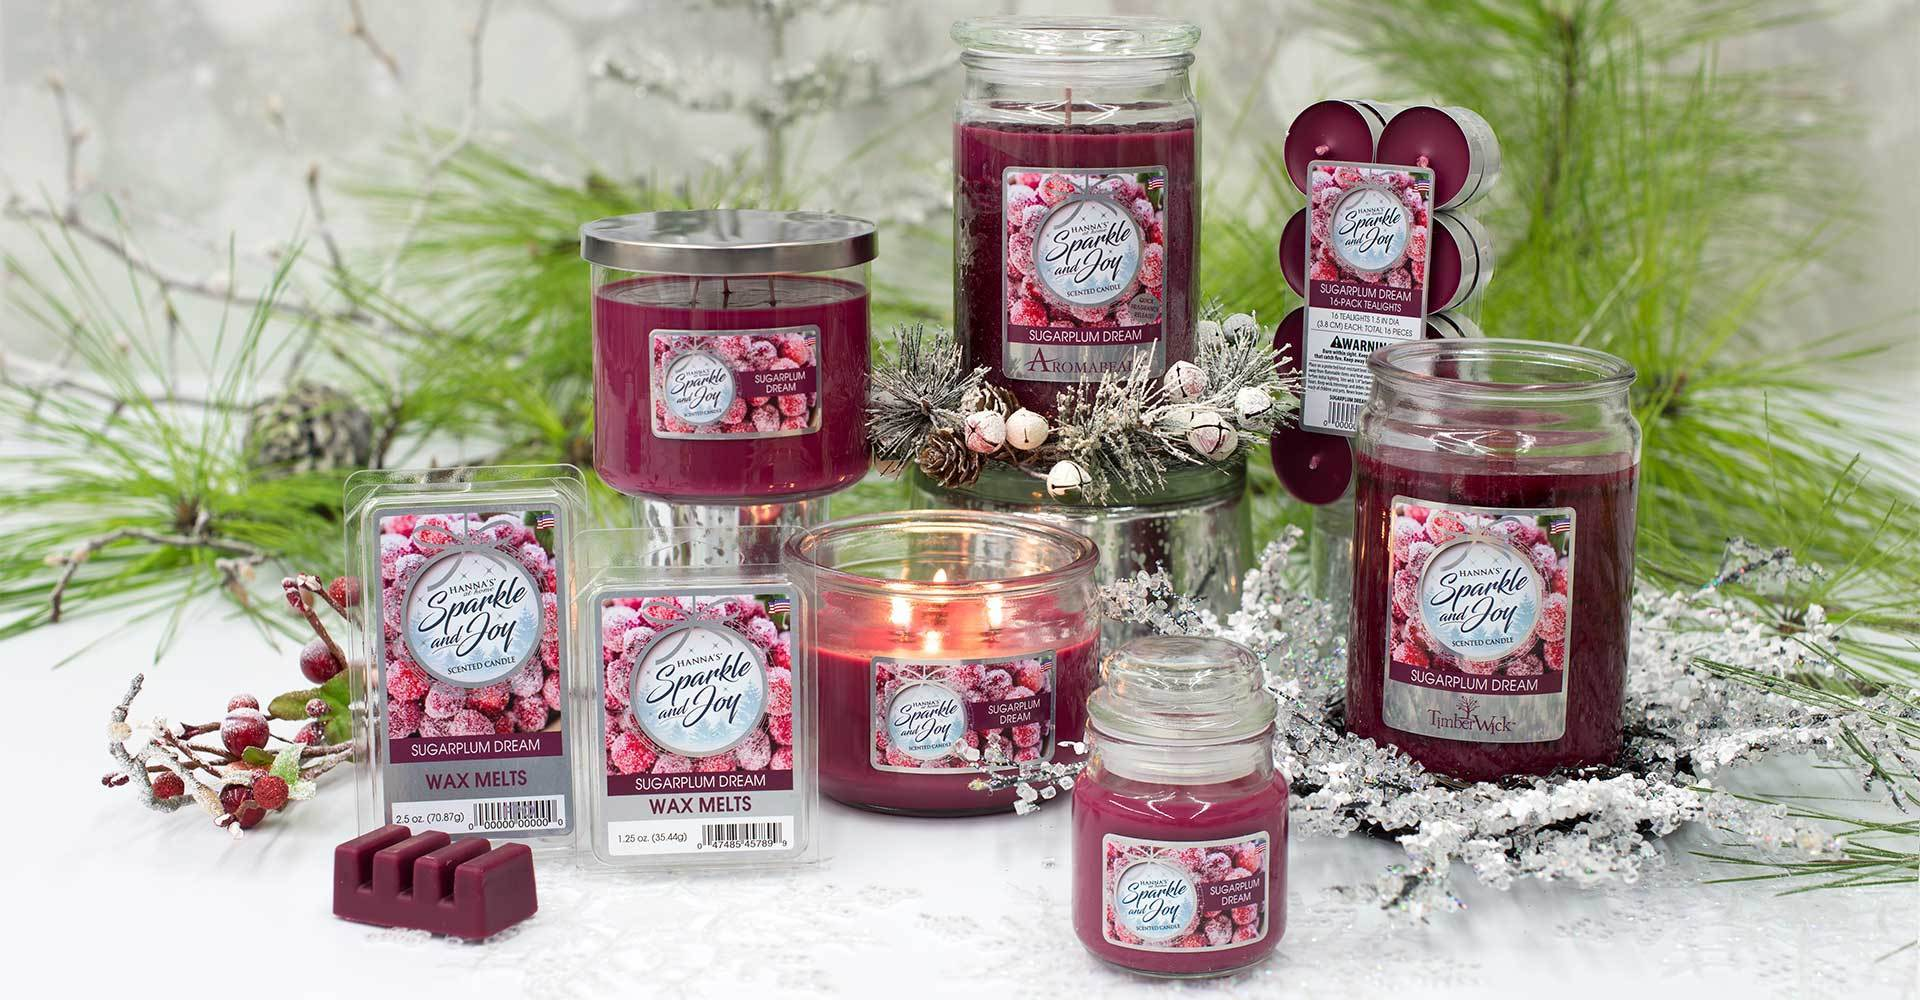 timberwick scented candles and melts on sale